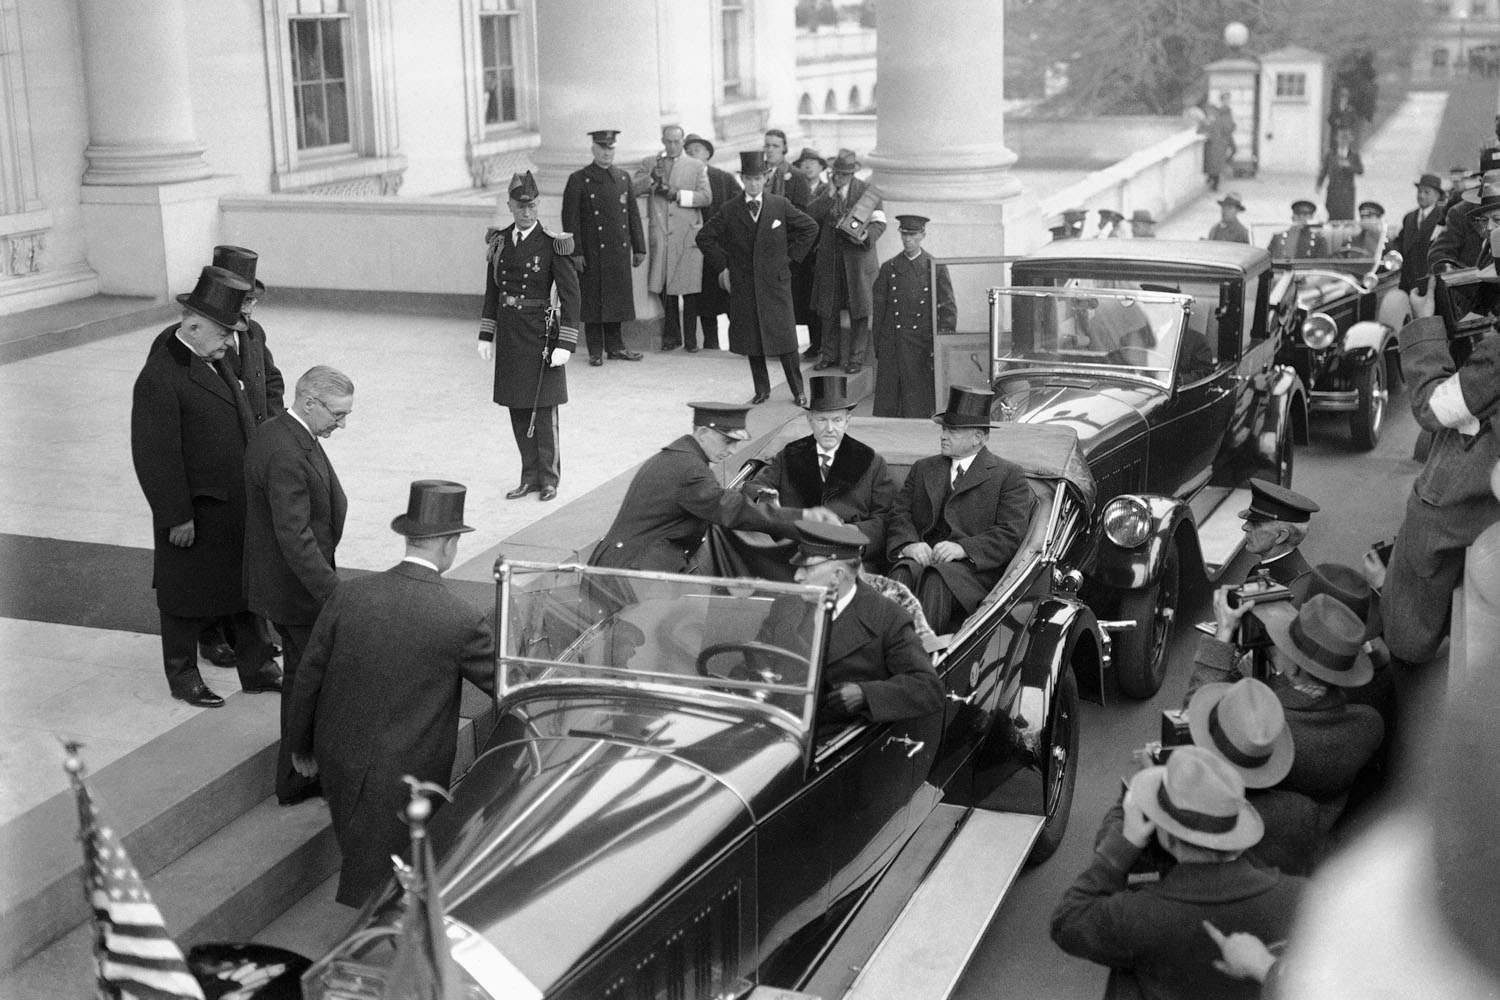 President Calvin Coolidge and President-elect Herbert Hoover, seated in car, depart the White House for Hoover's inauguration, March 4, 1929.